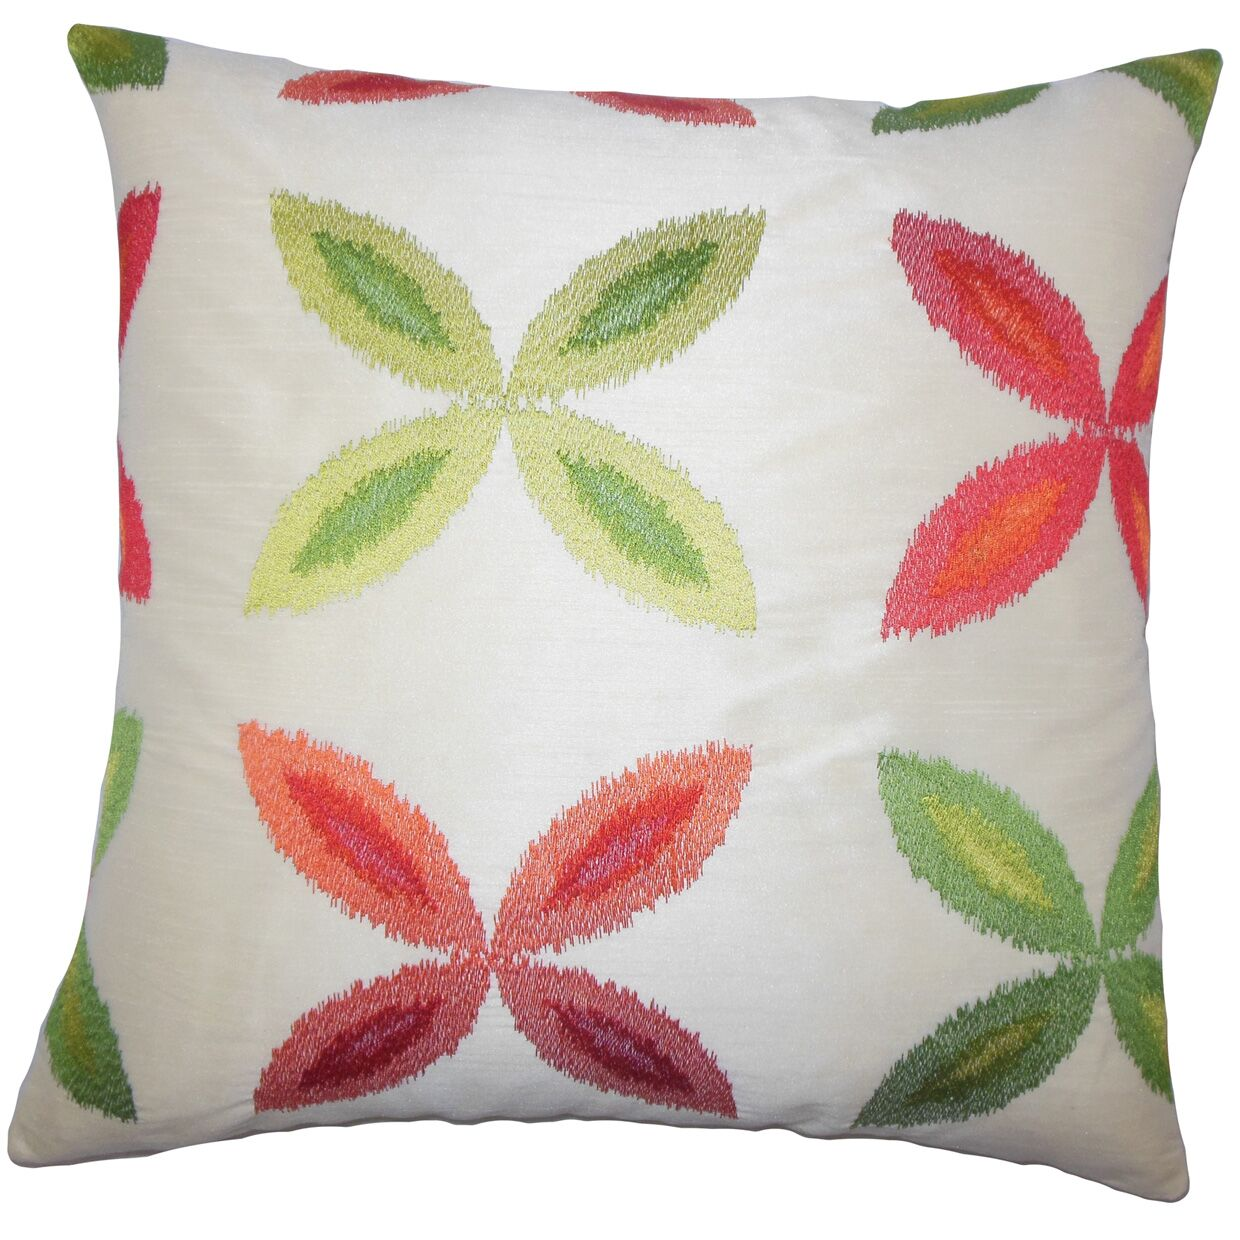 Syshe Ikat Bedding Sham Size: King, Color: Red Green